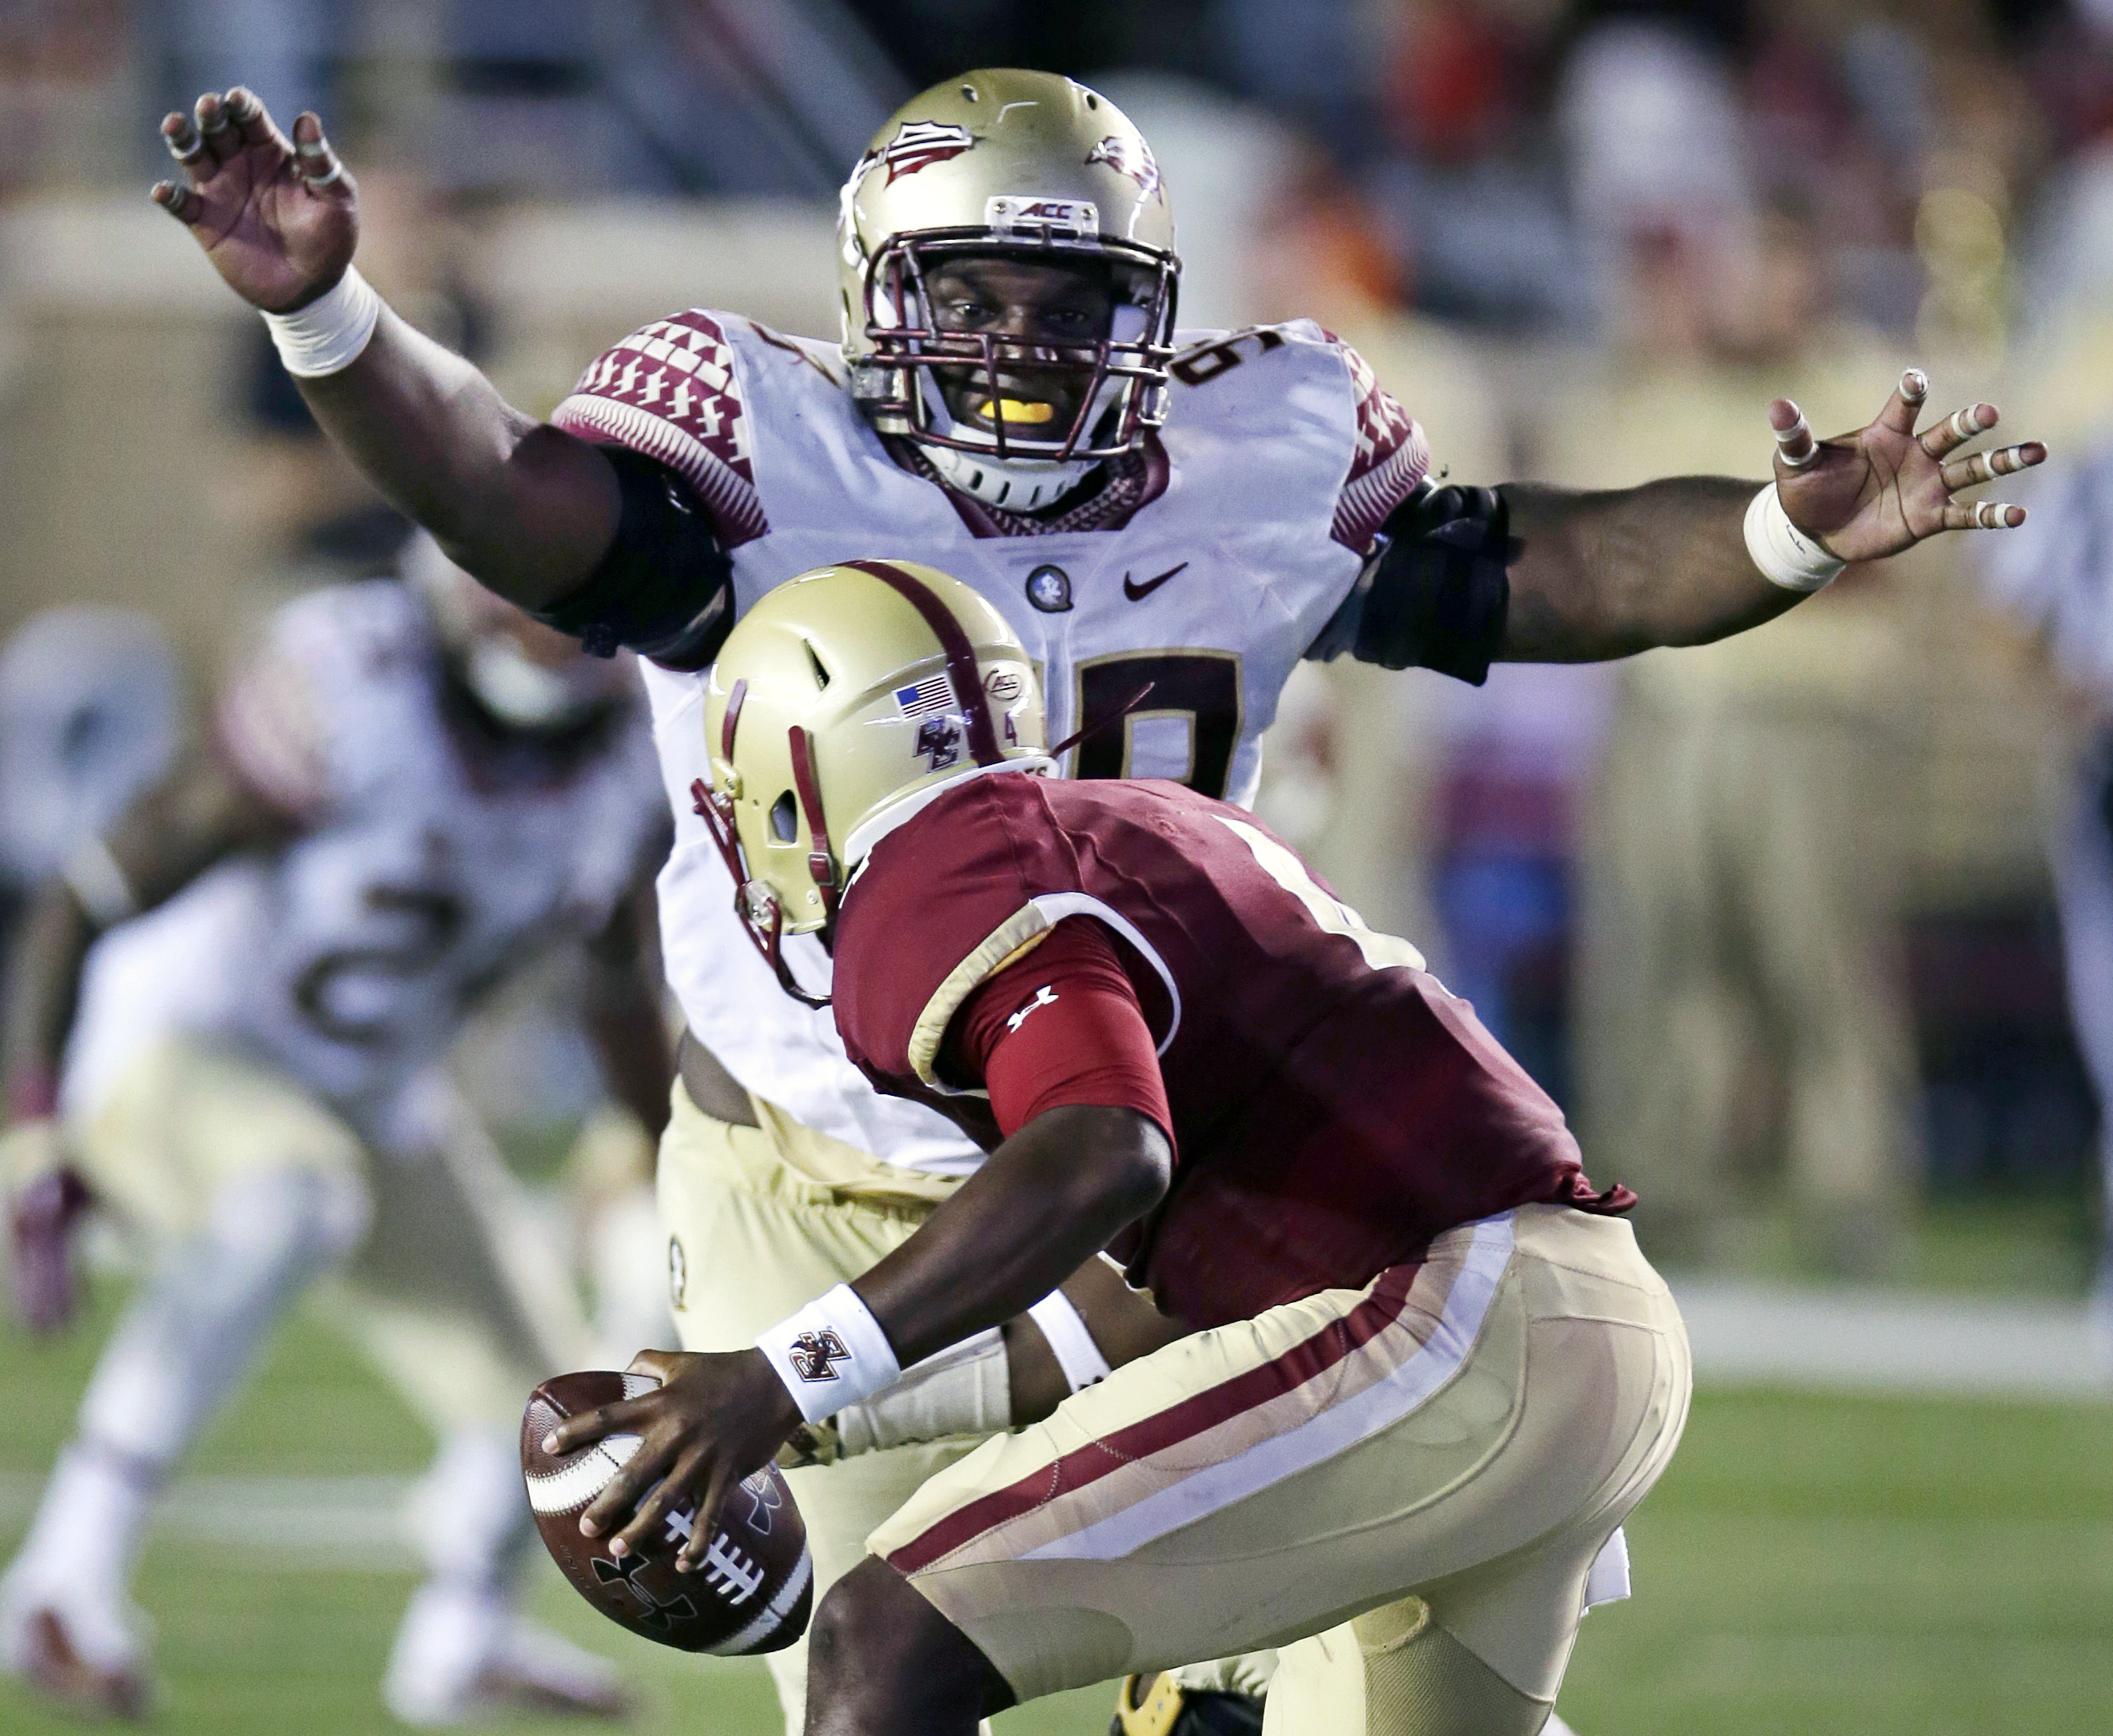 FILE - In this Sept. 18, 2015, file photo, Florida State defensive tackle Nile Lawrence-Stample tracks down Boston College quarterback Darius Wade on a sack during the second half of an NCAA college football game in Boston. Florida State's bye week might